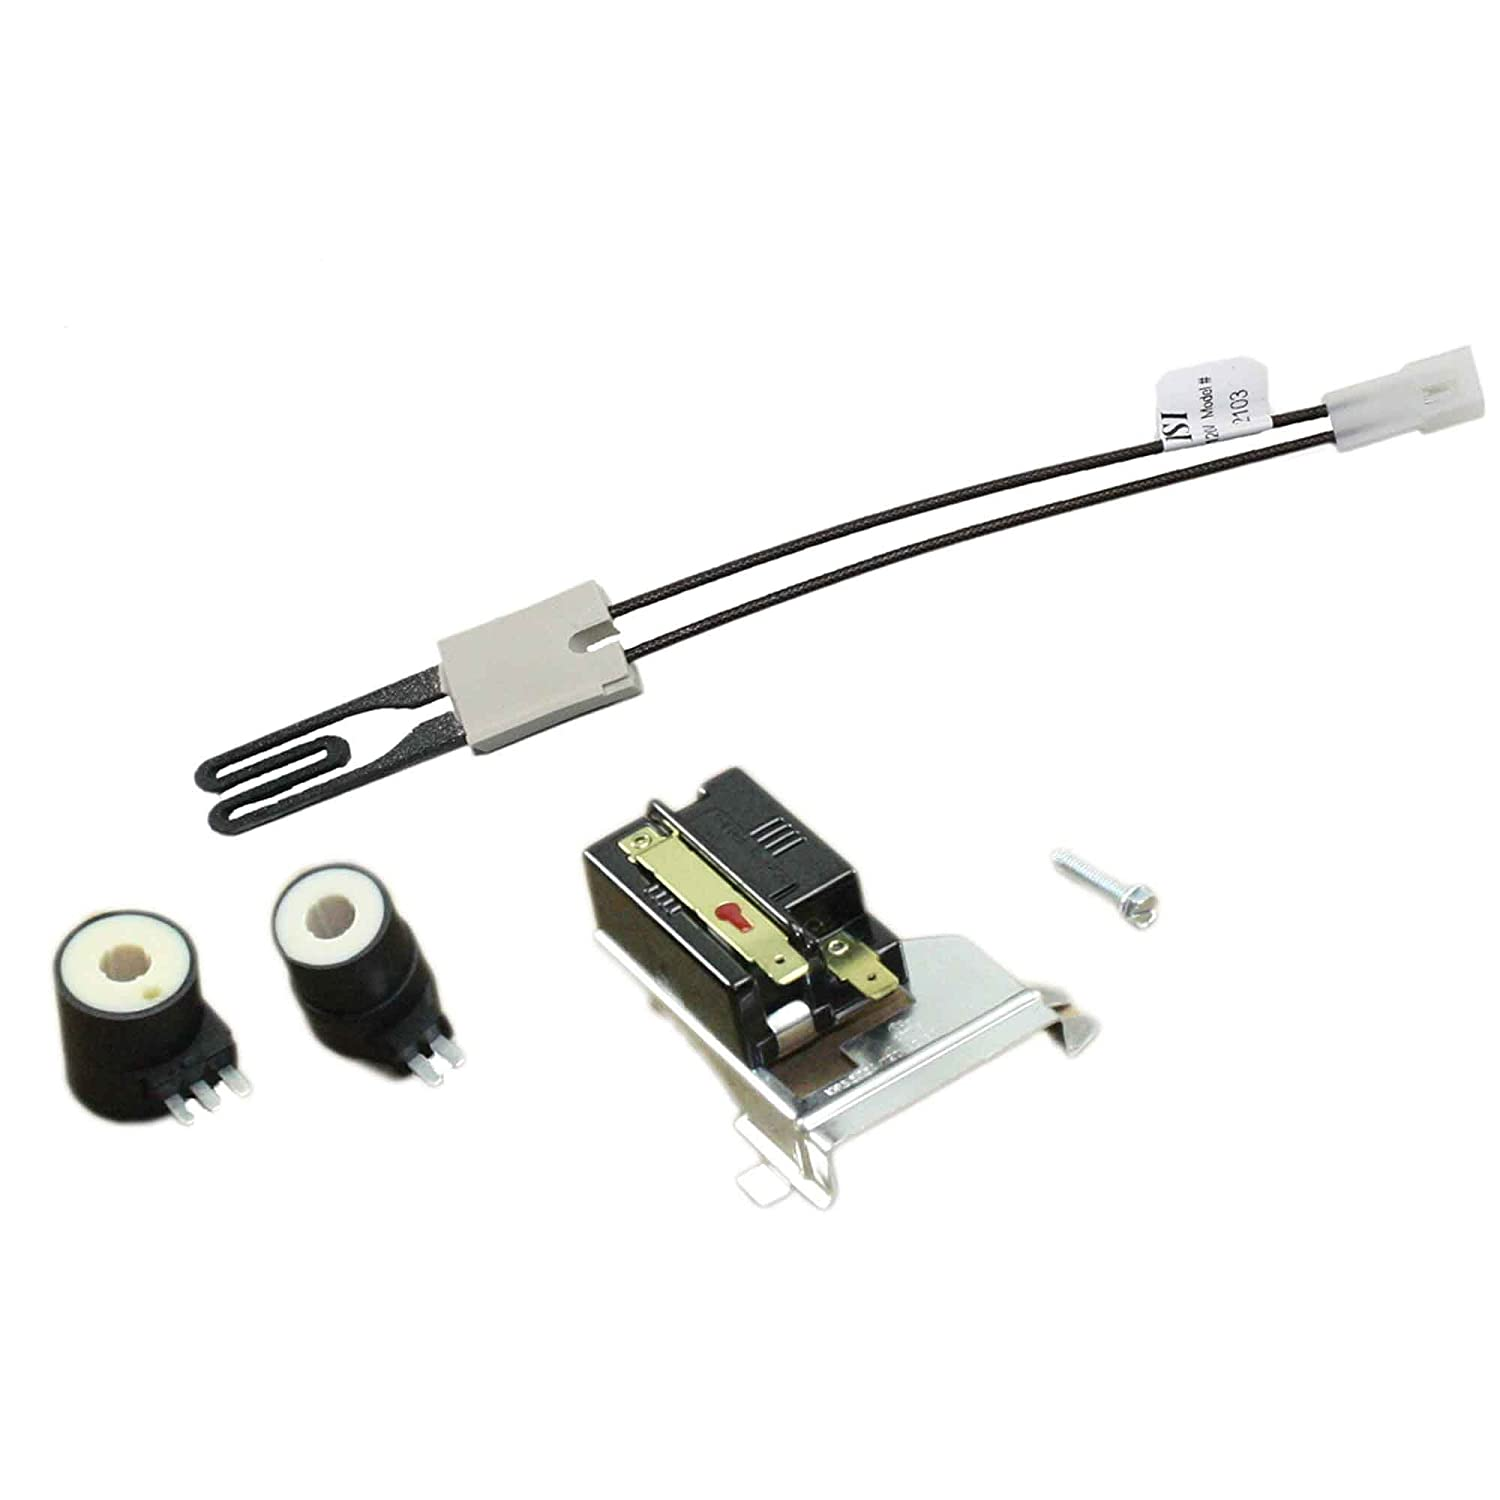 Supplying Demand 279311 Igniter 279834 Coil 338906 Flame Sensor Kit